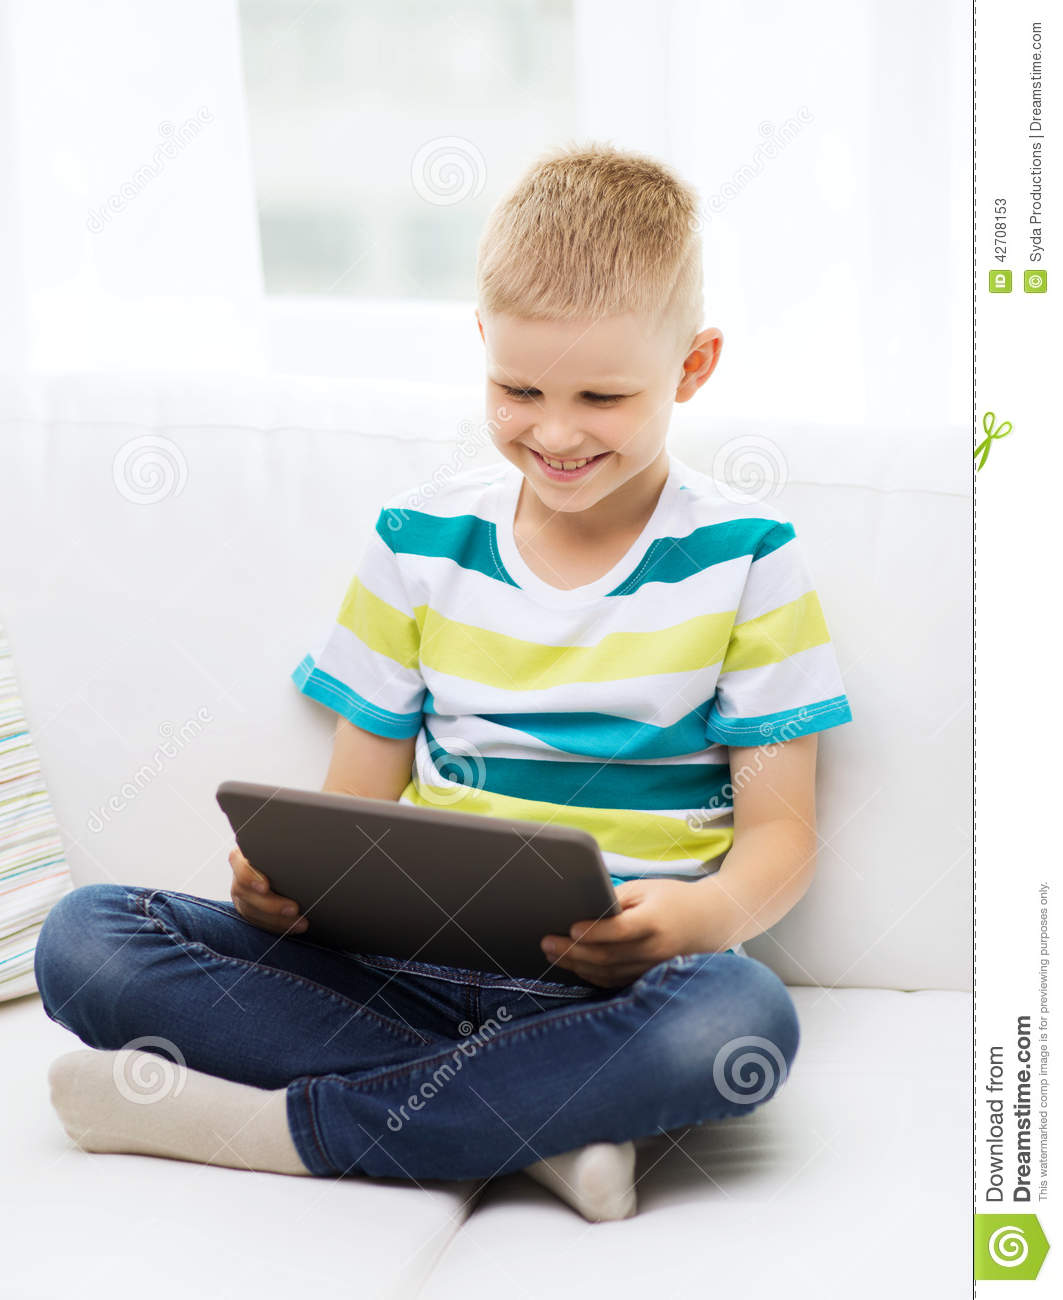 New Home Technology: Smiling Boy With Tablet Computer At Home Stock Image